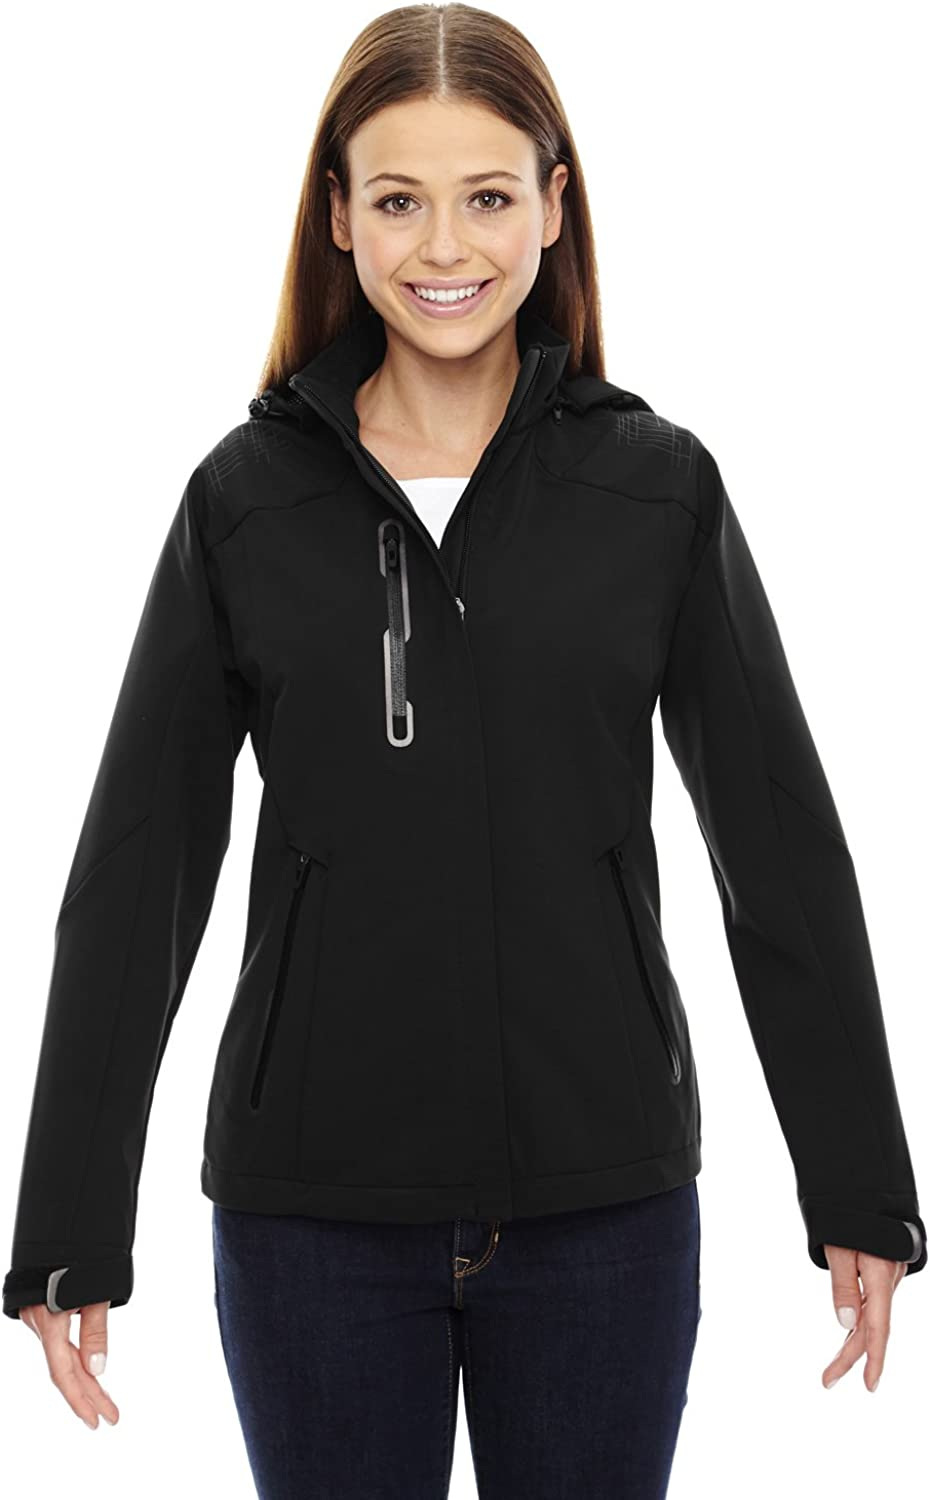 Axis Soft Shell Jacket with Black 5 ☆ very popular Surprise price 78665 Print Graphic Accents